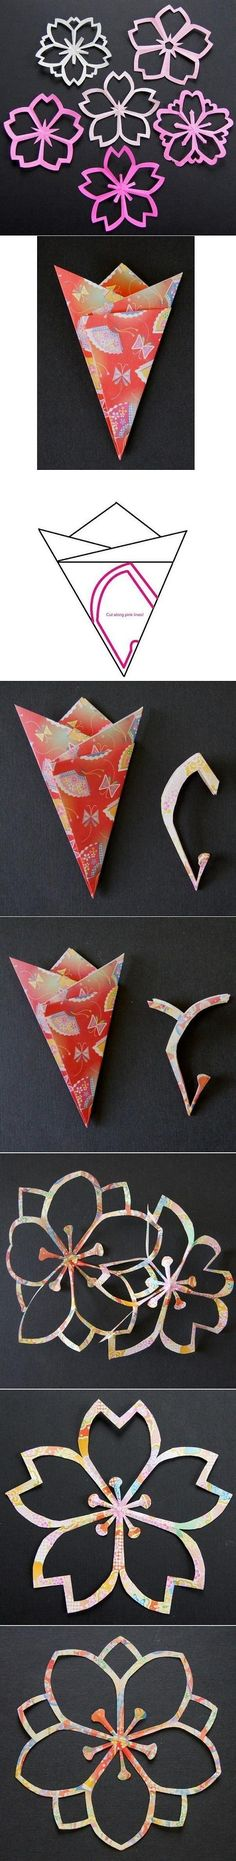 {DIY Paper Flower Cutting} - cherry blossoms.  Could do with maps...